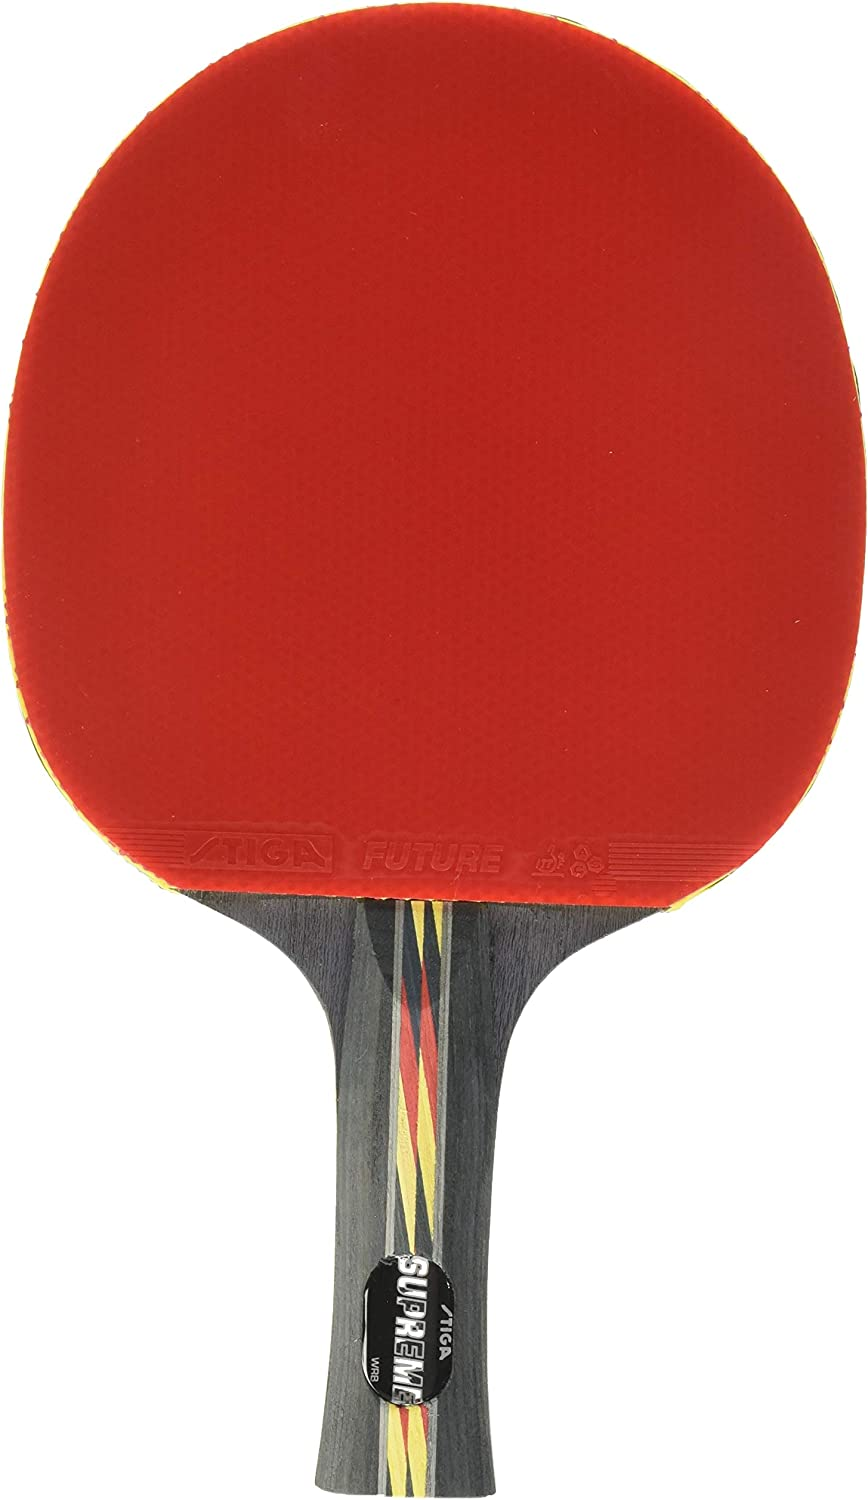 STIGA Supreme Performance-Level Table Tennis Made Excellent IT Racket with Industry No. 1